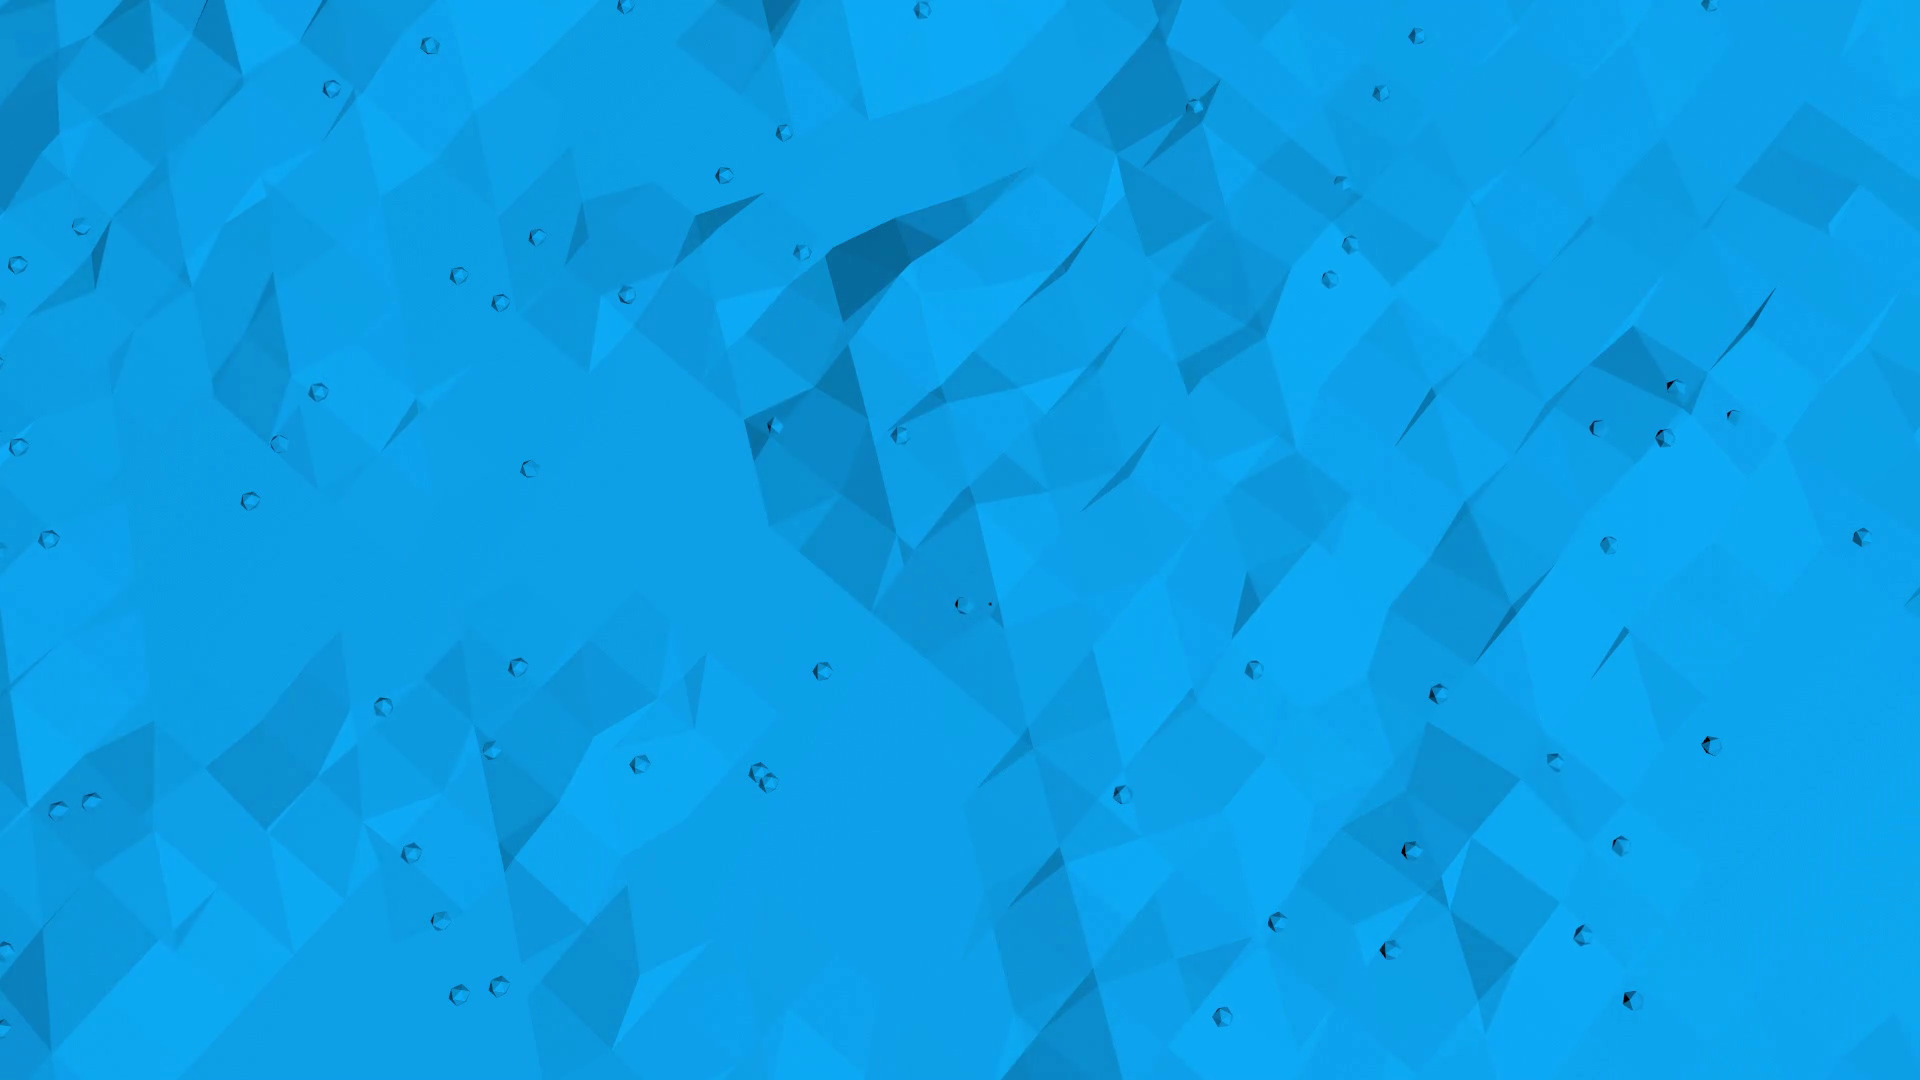 Blue low poly vibrating surface as simple backdrop. Blue polygonal ...